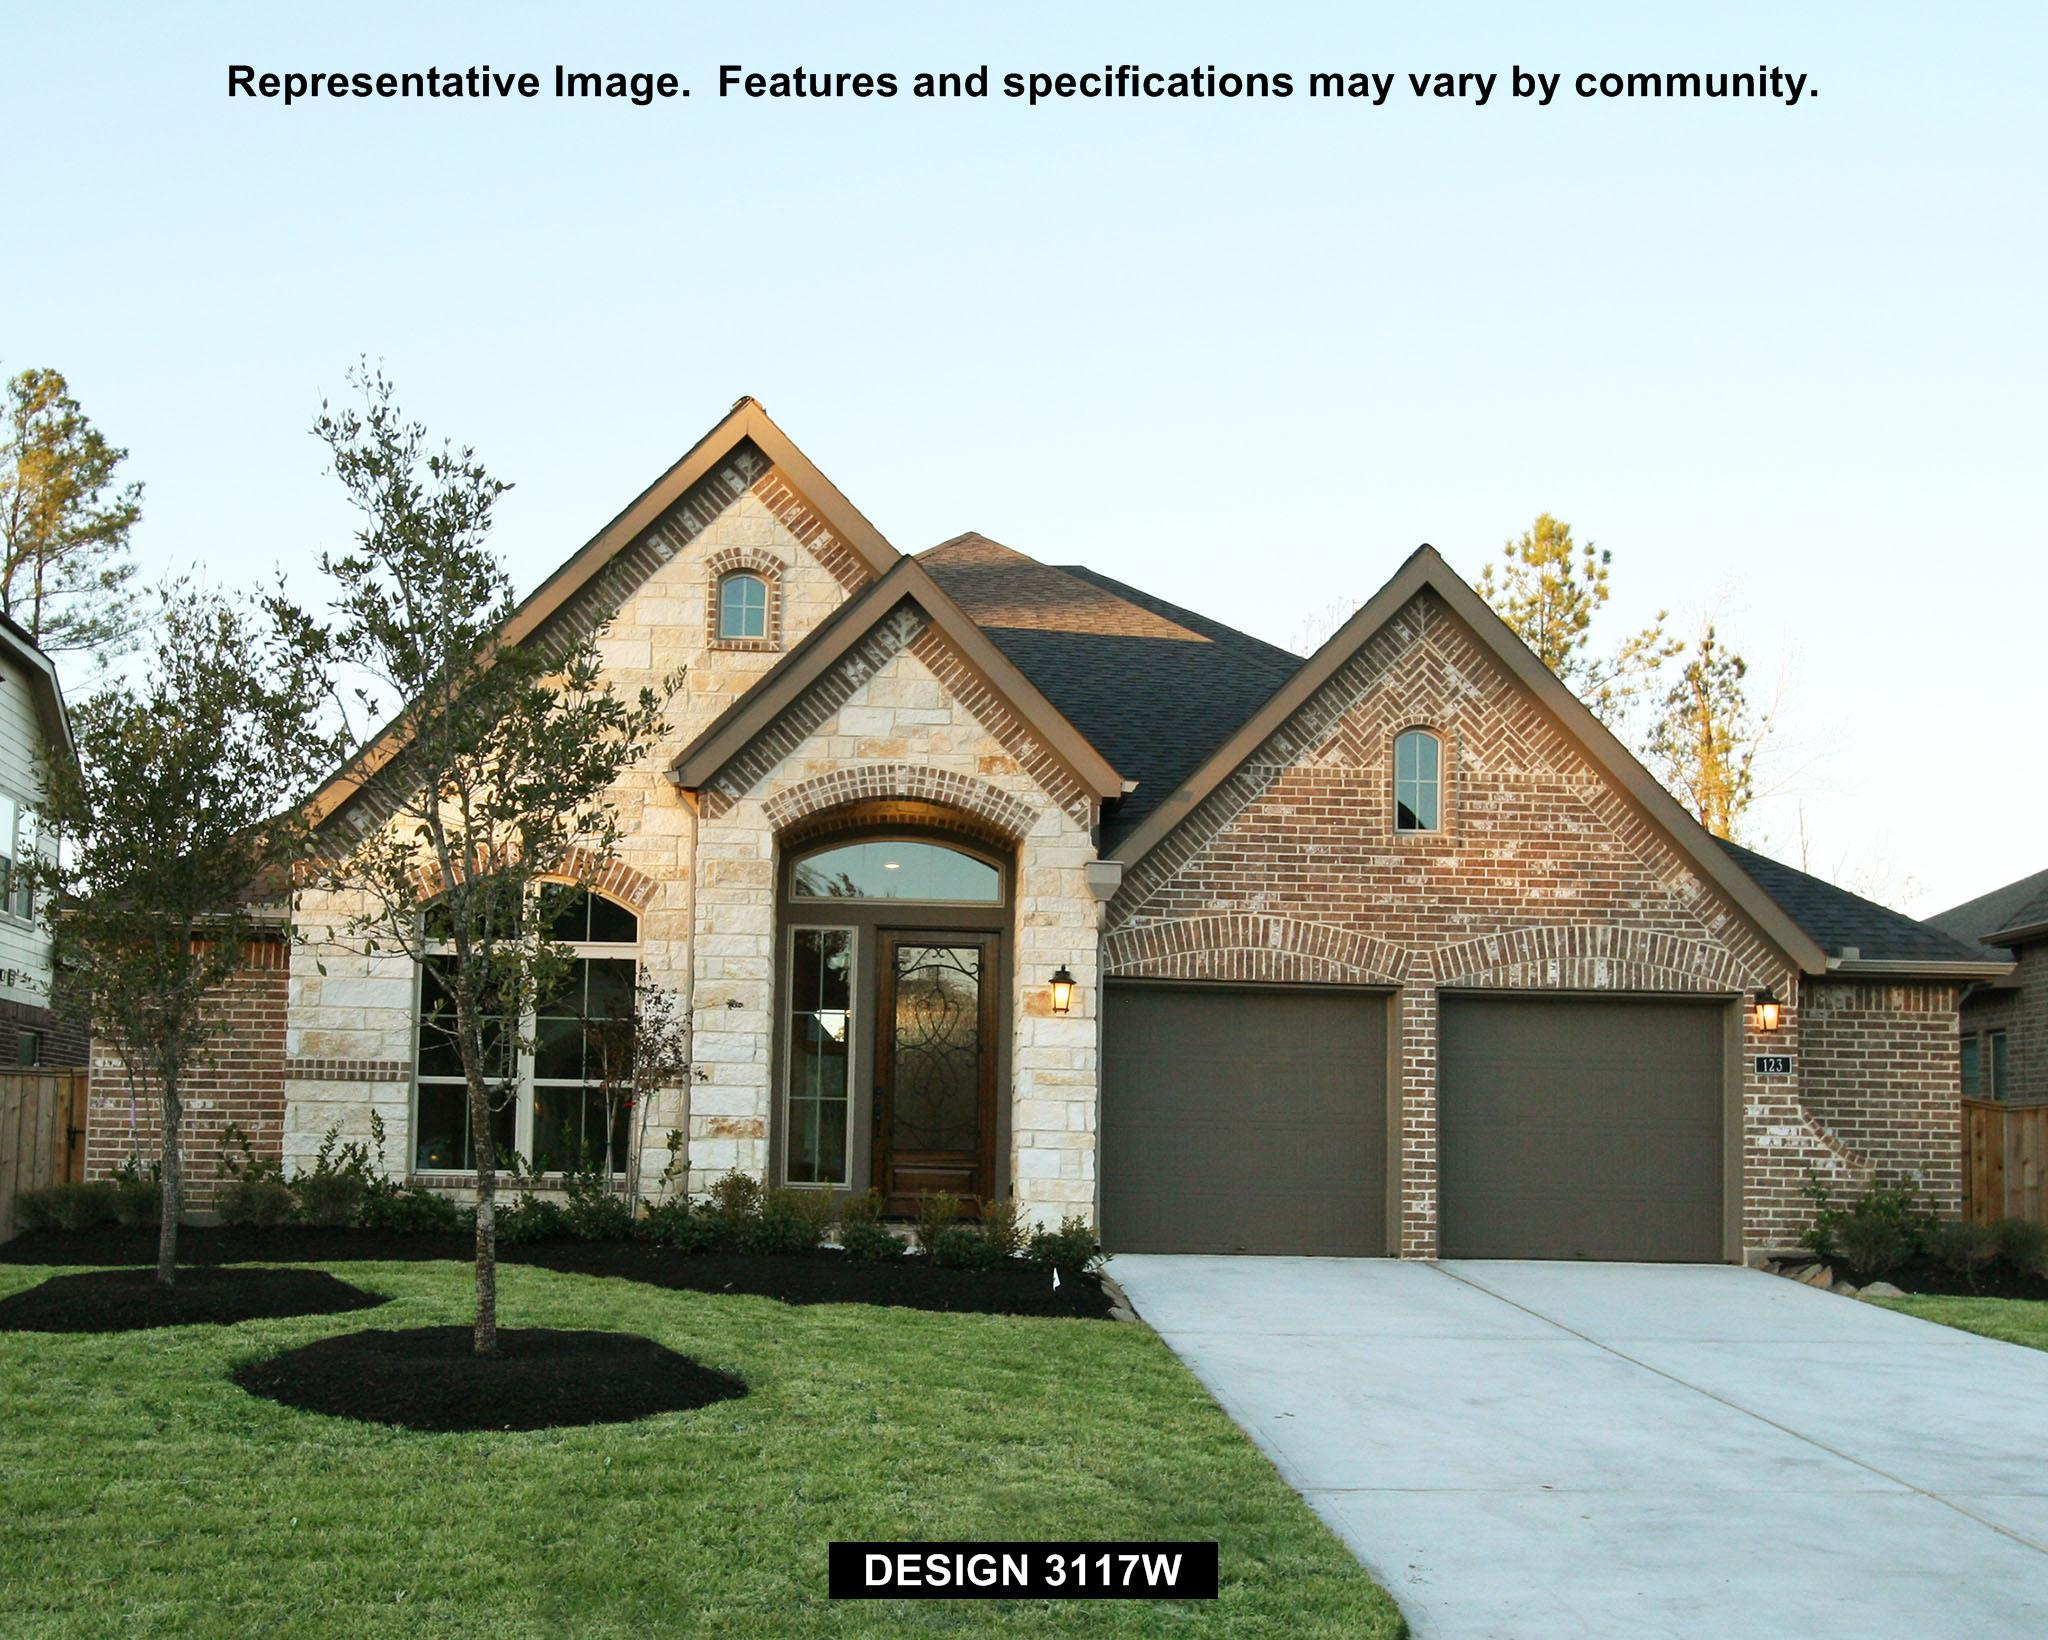 3117W - Firethorne: Firethorne 60': Katy, TX - Perry Homes